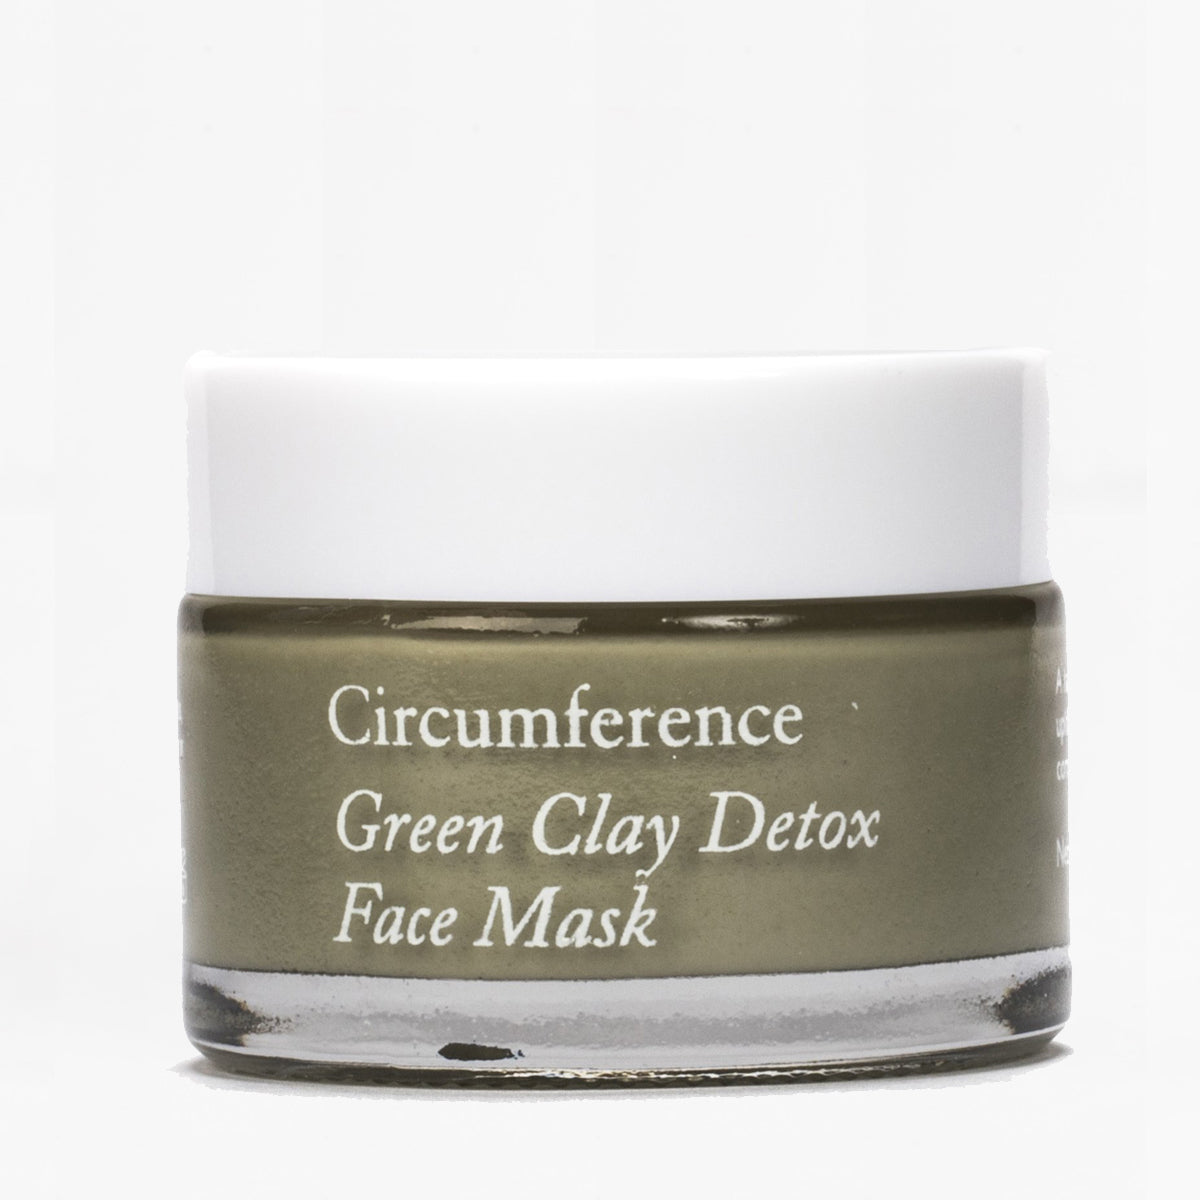 Circumference green clay detox face mask